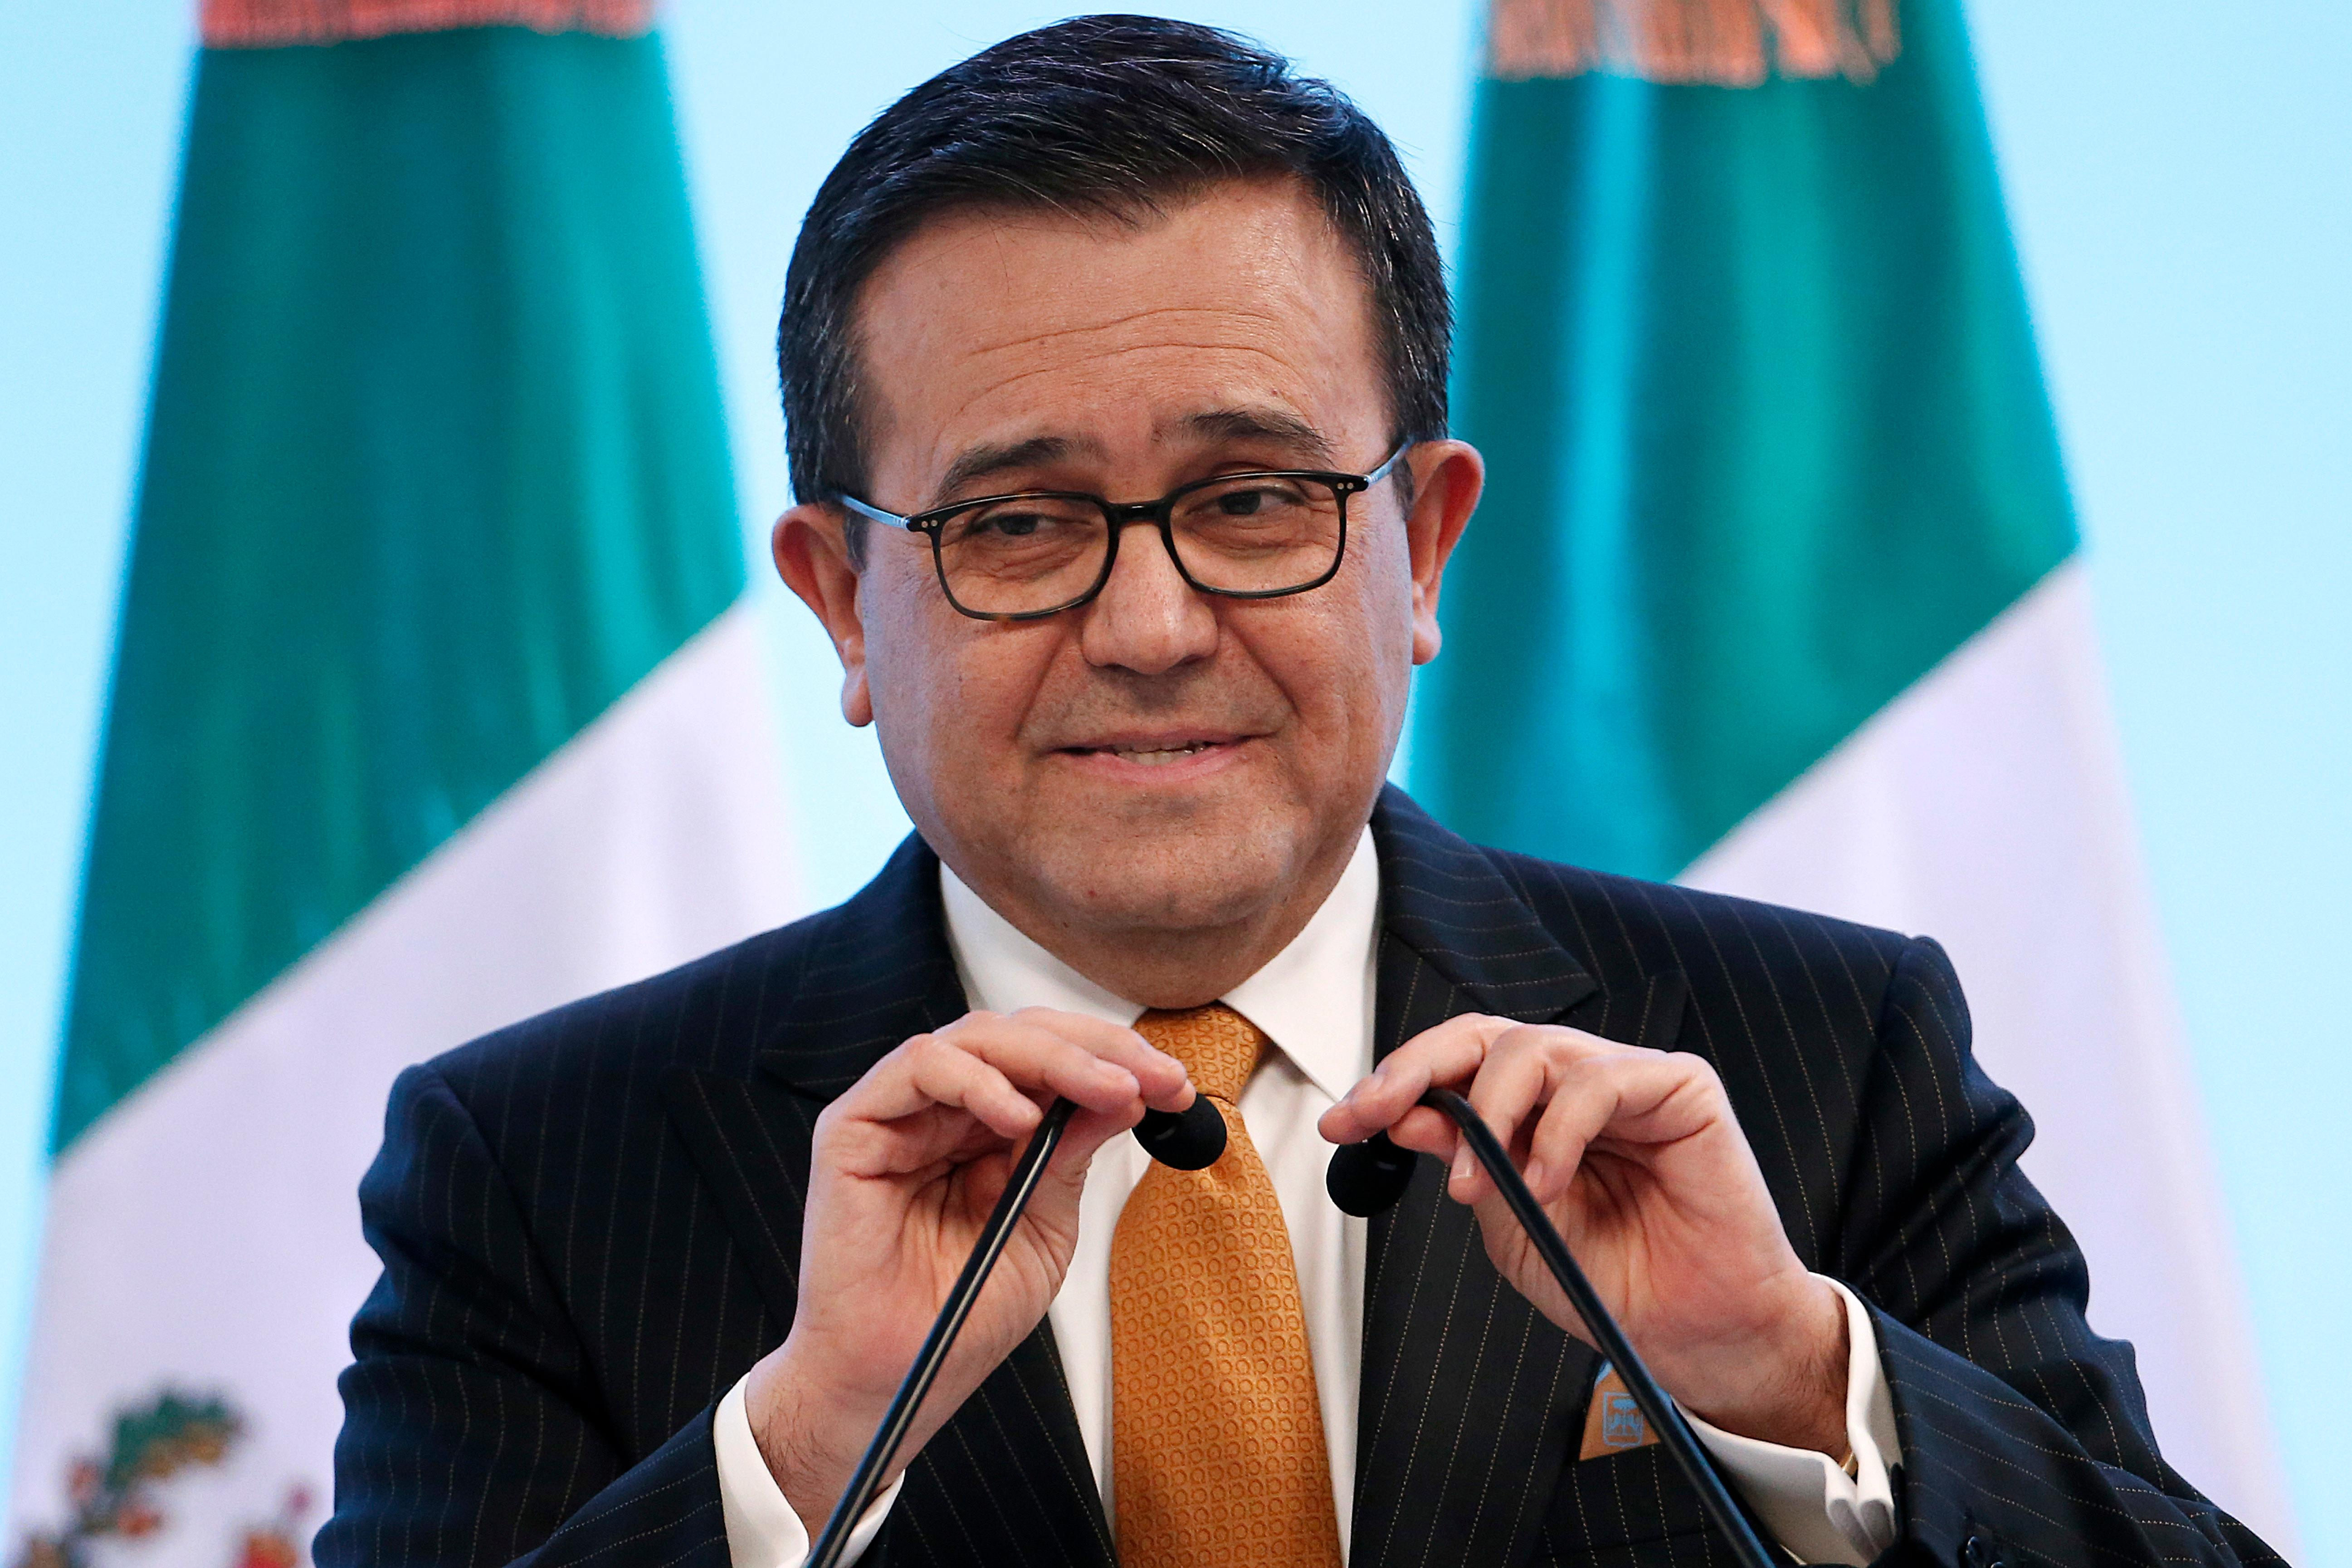 Mexico's Secretary of Economy Ildefonso Guajardo Villarreal speaks during a press conference regarding the seventh round of NAFTA renegotiations in Mexico City, Monday, March 5, 2018. (AP Photo / Marco Ugarte)